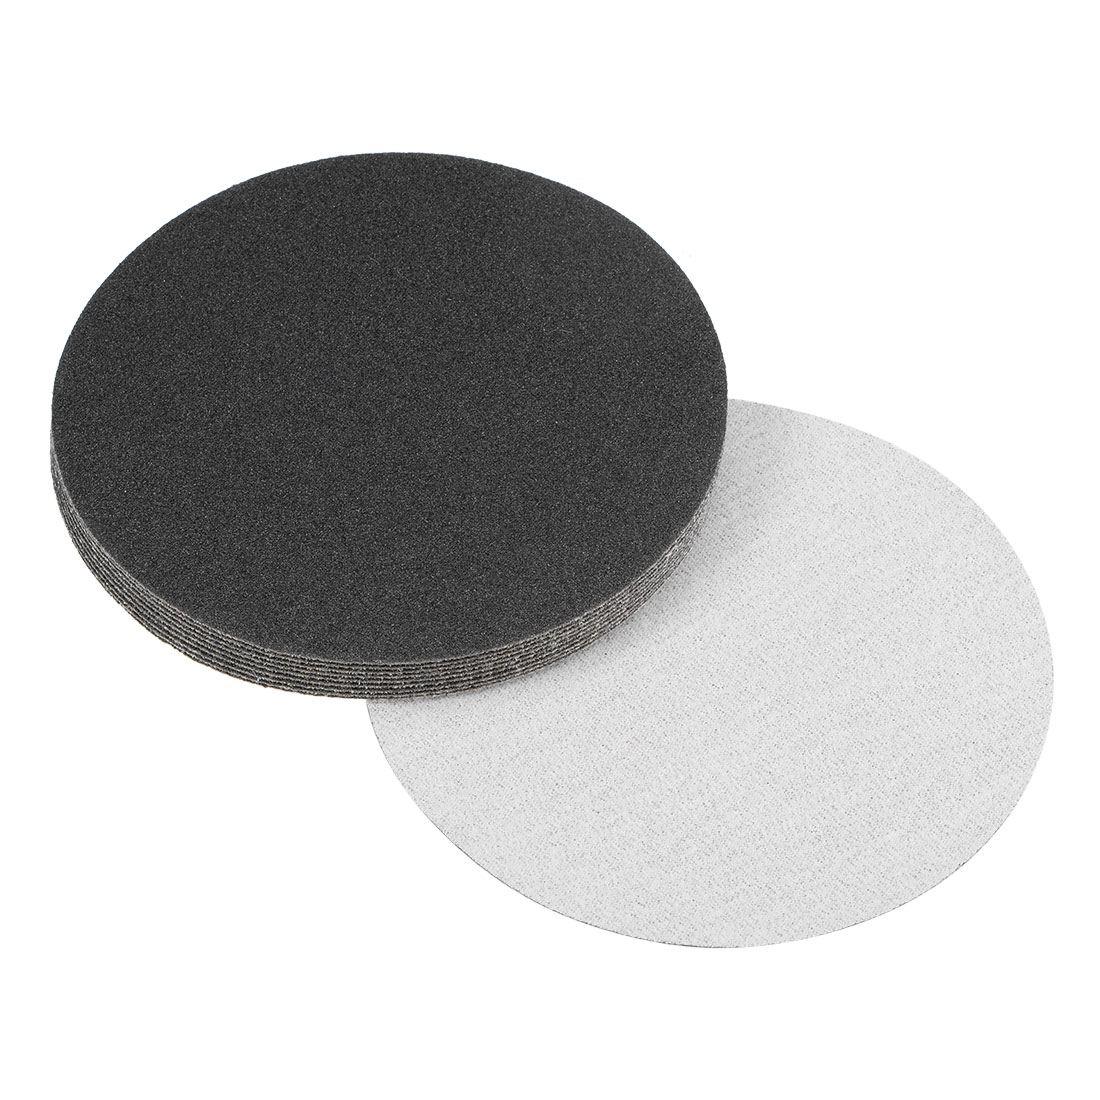 5 inch Wet Dry Discs 120 Grit Hook and Loop Sanding Disc Silicon Carbide 10pcs